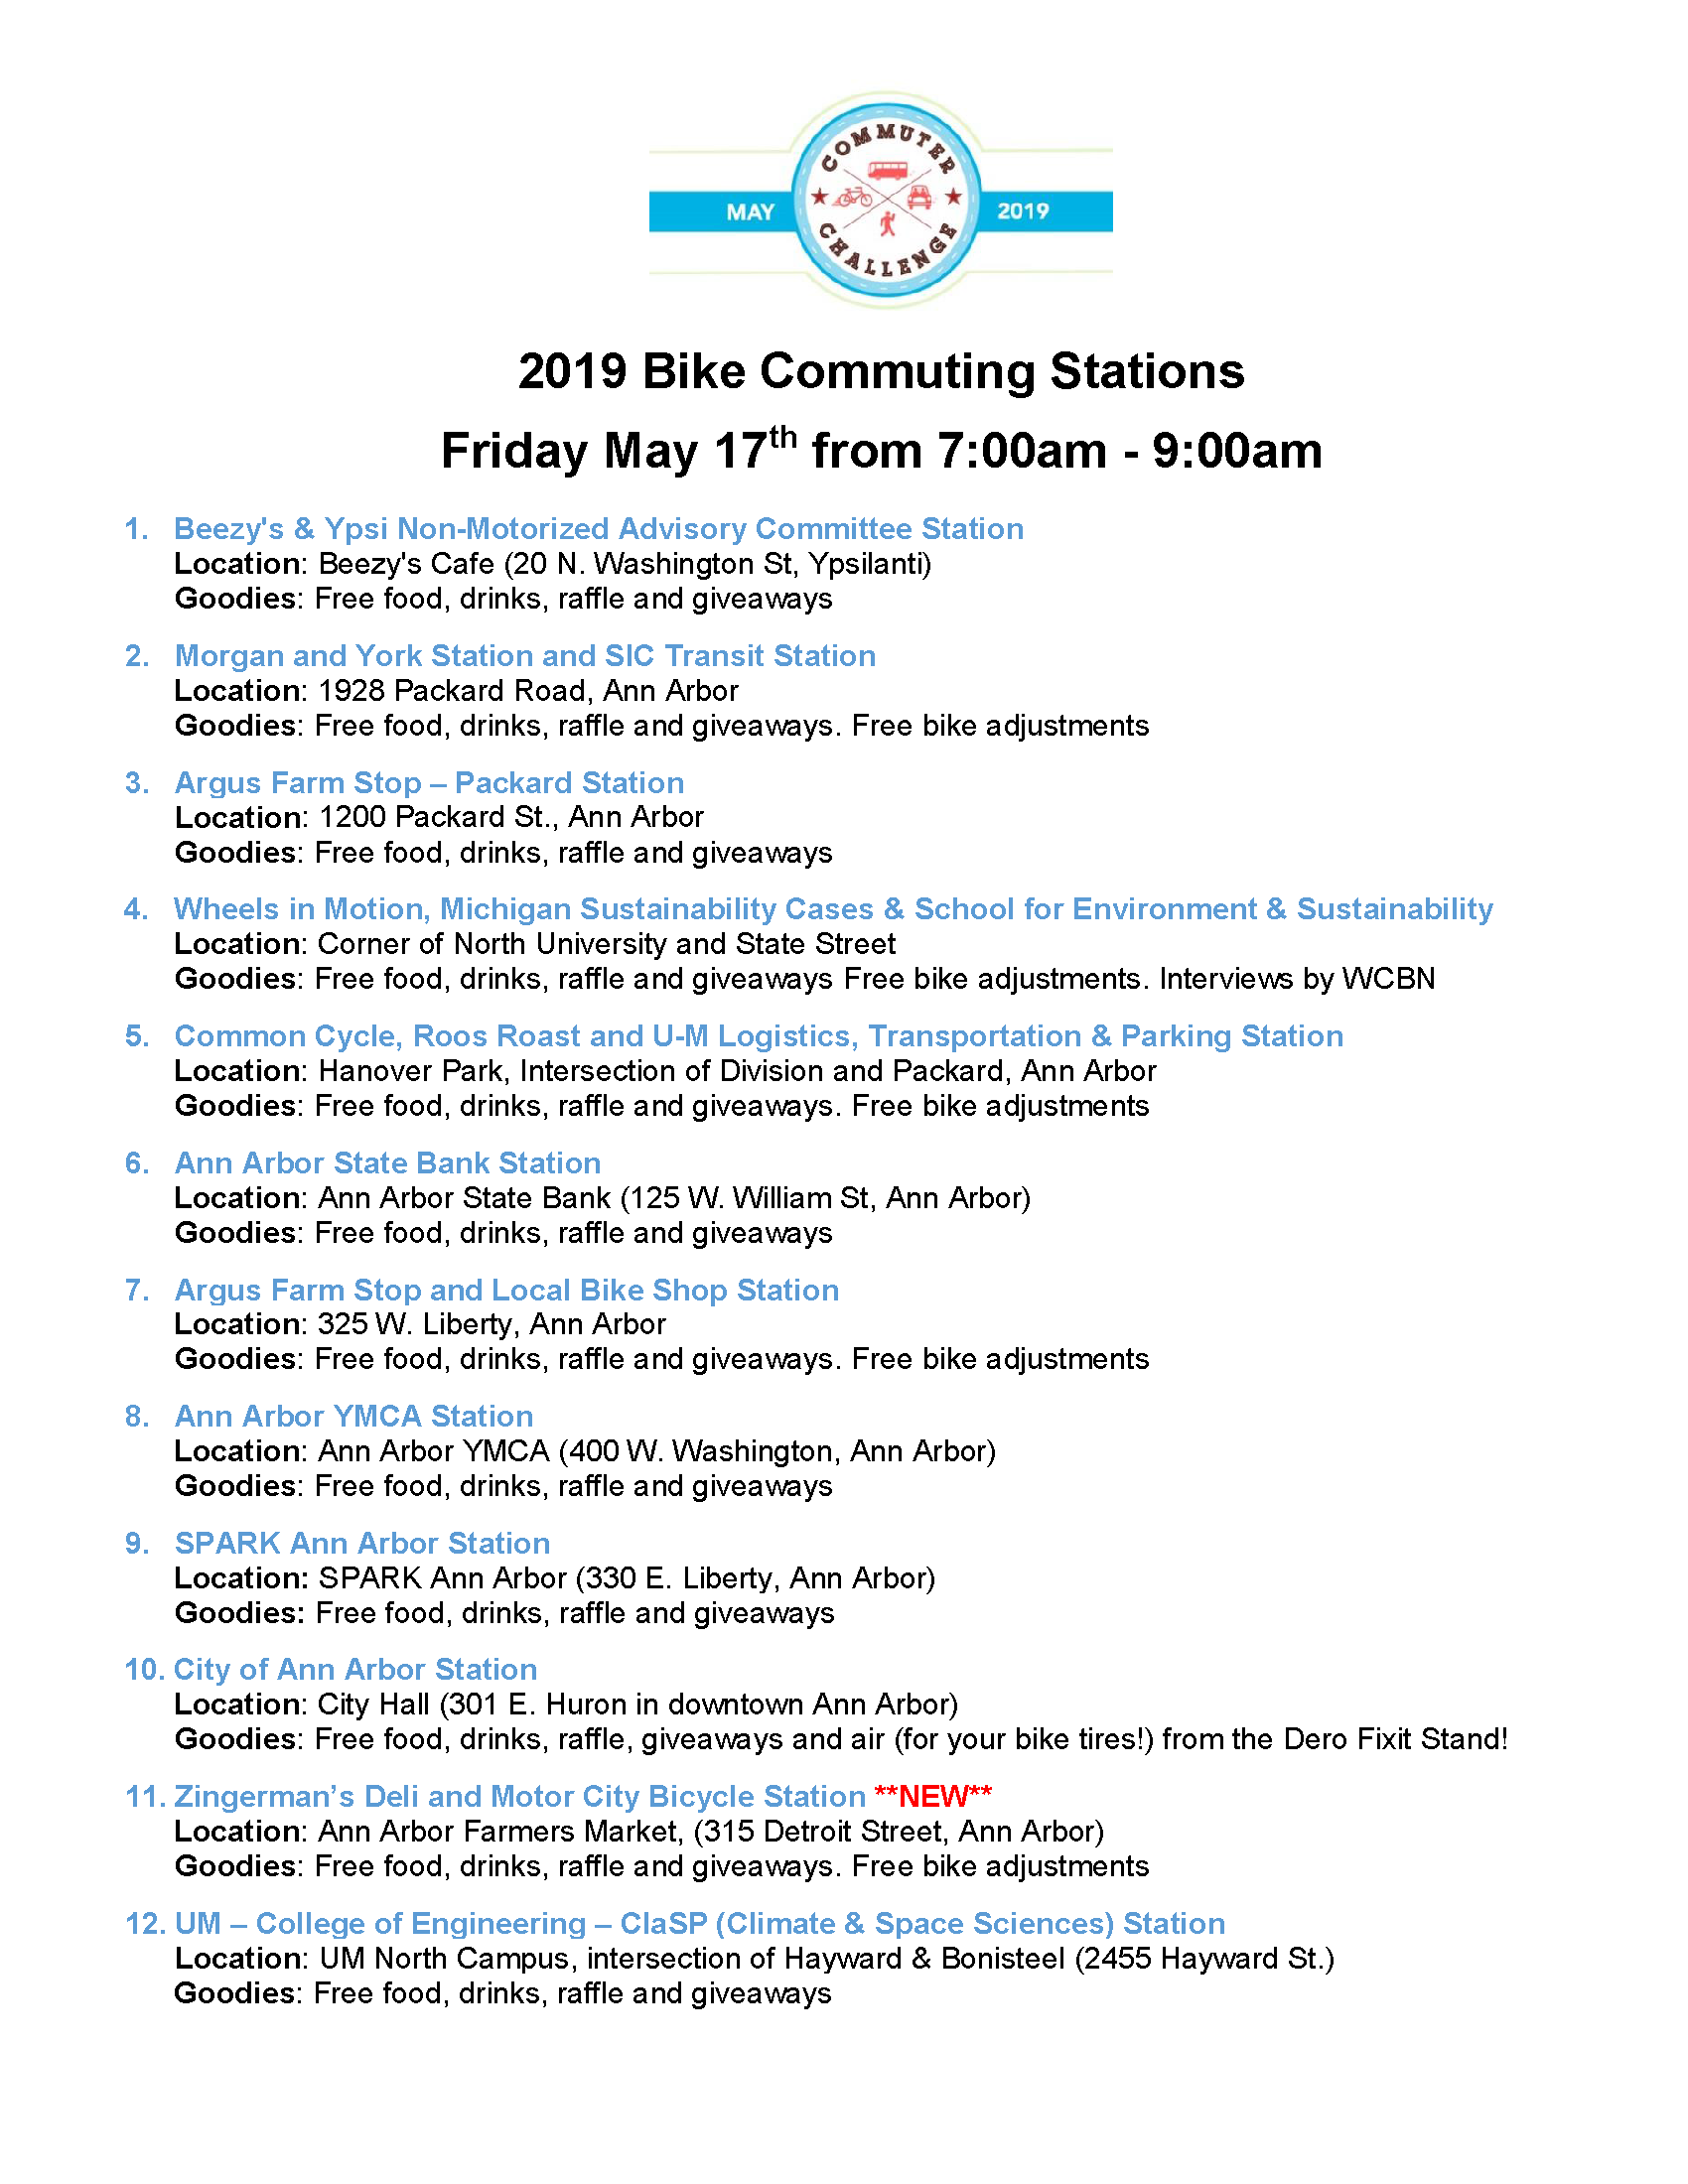 2019 Bike to Work Day Station List